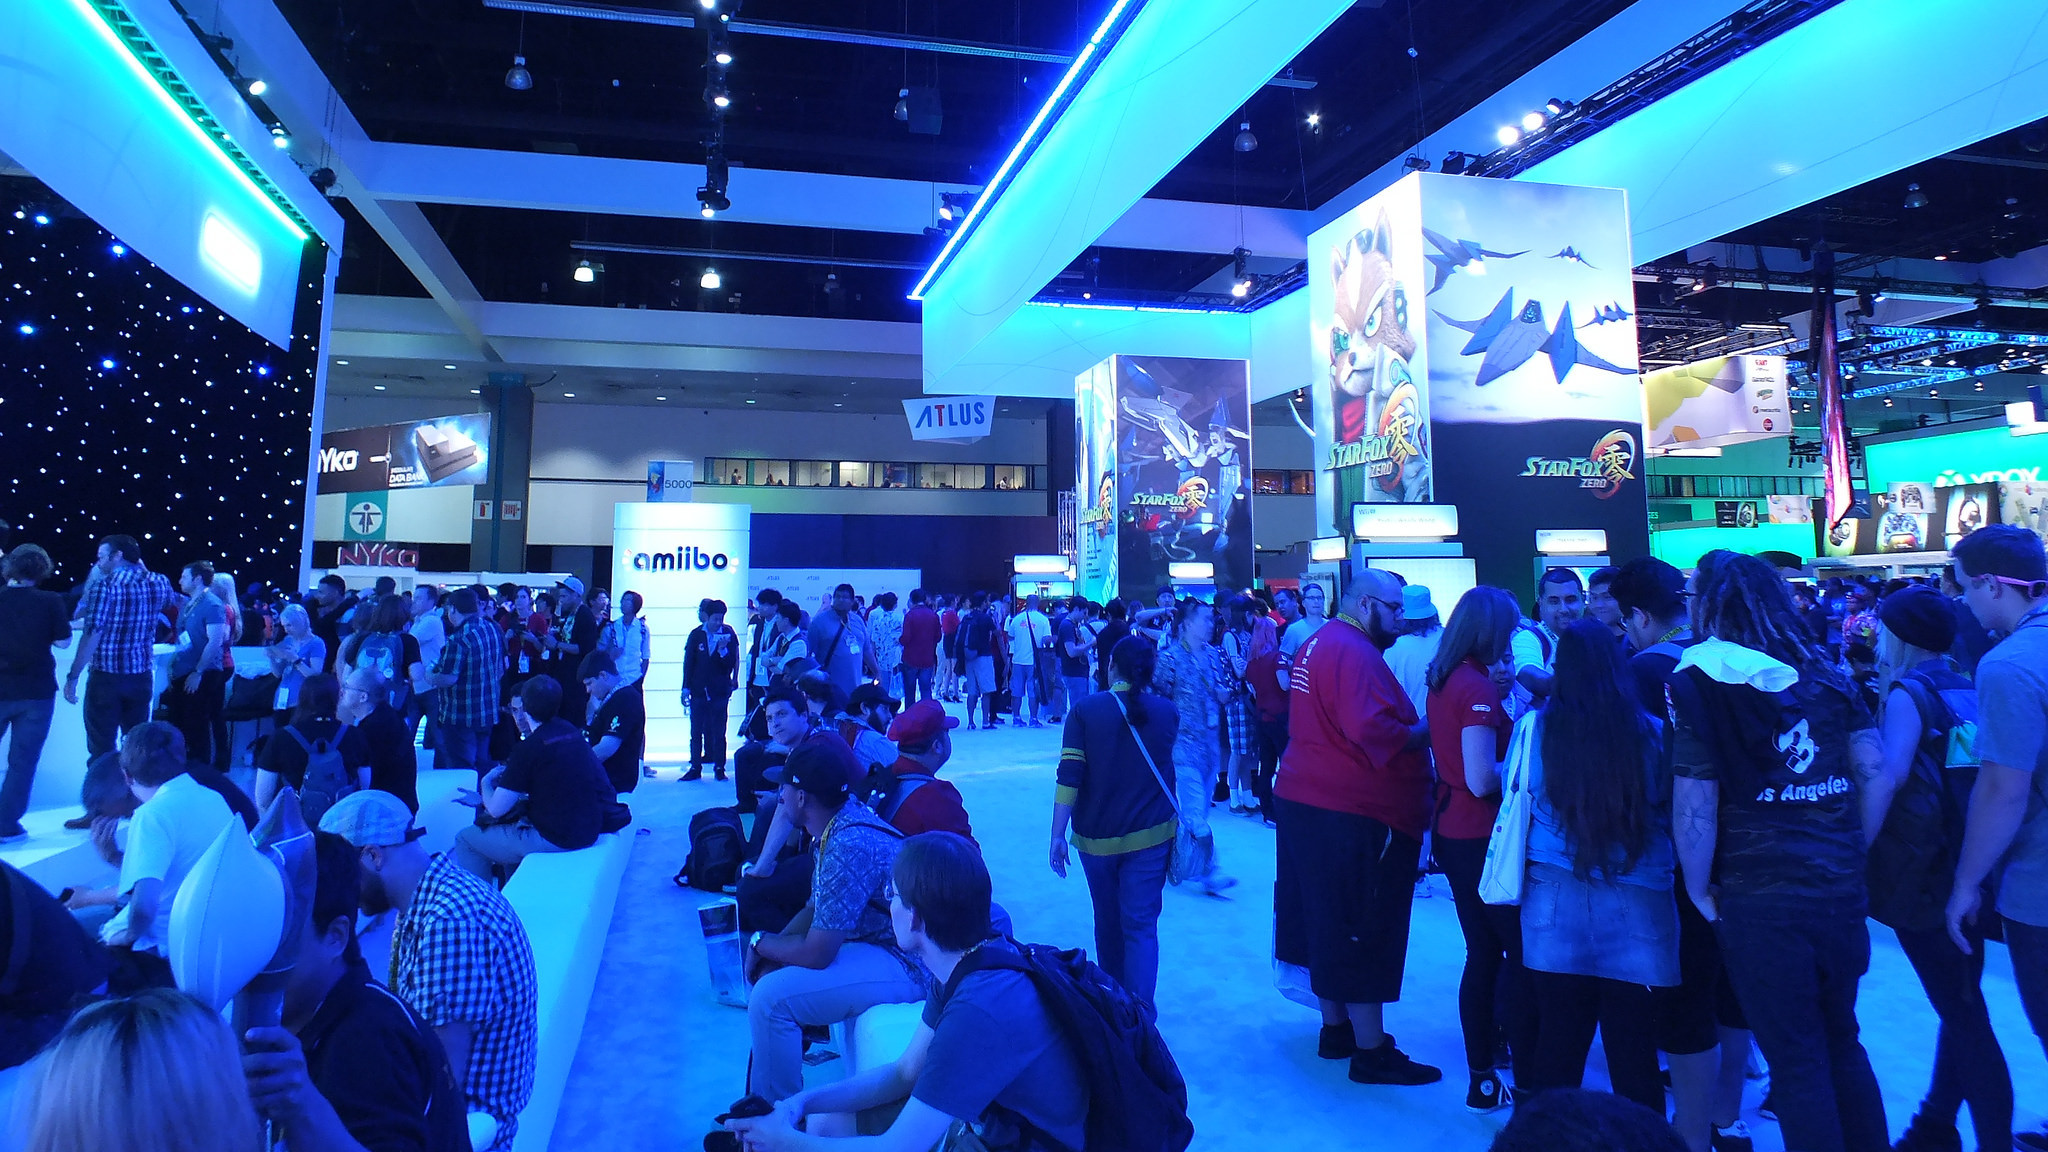 Nintendo, E3 2015 booth, 18/06/2015, by emr9801 (2048x1152)